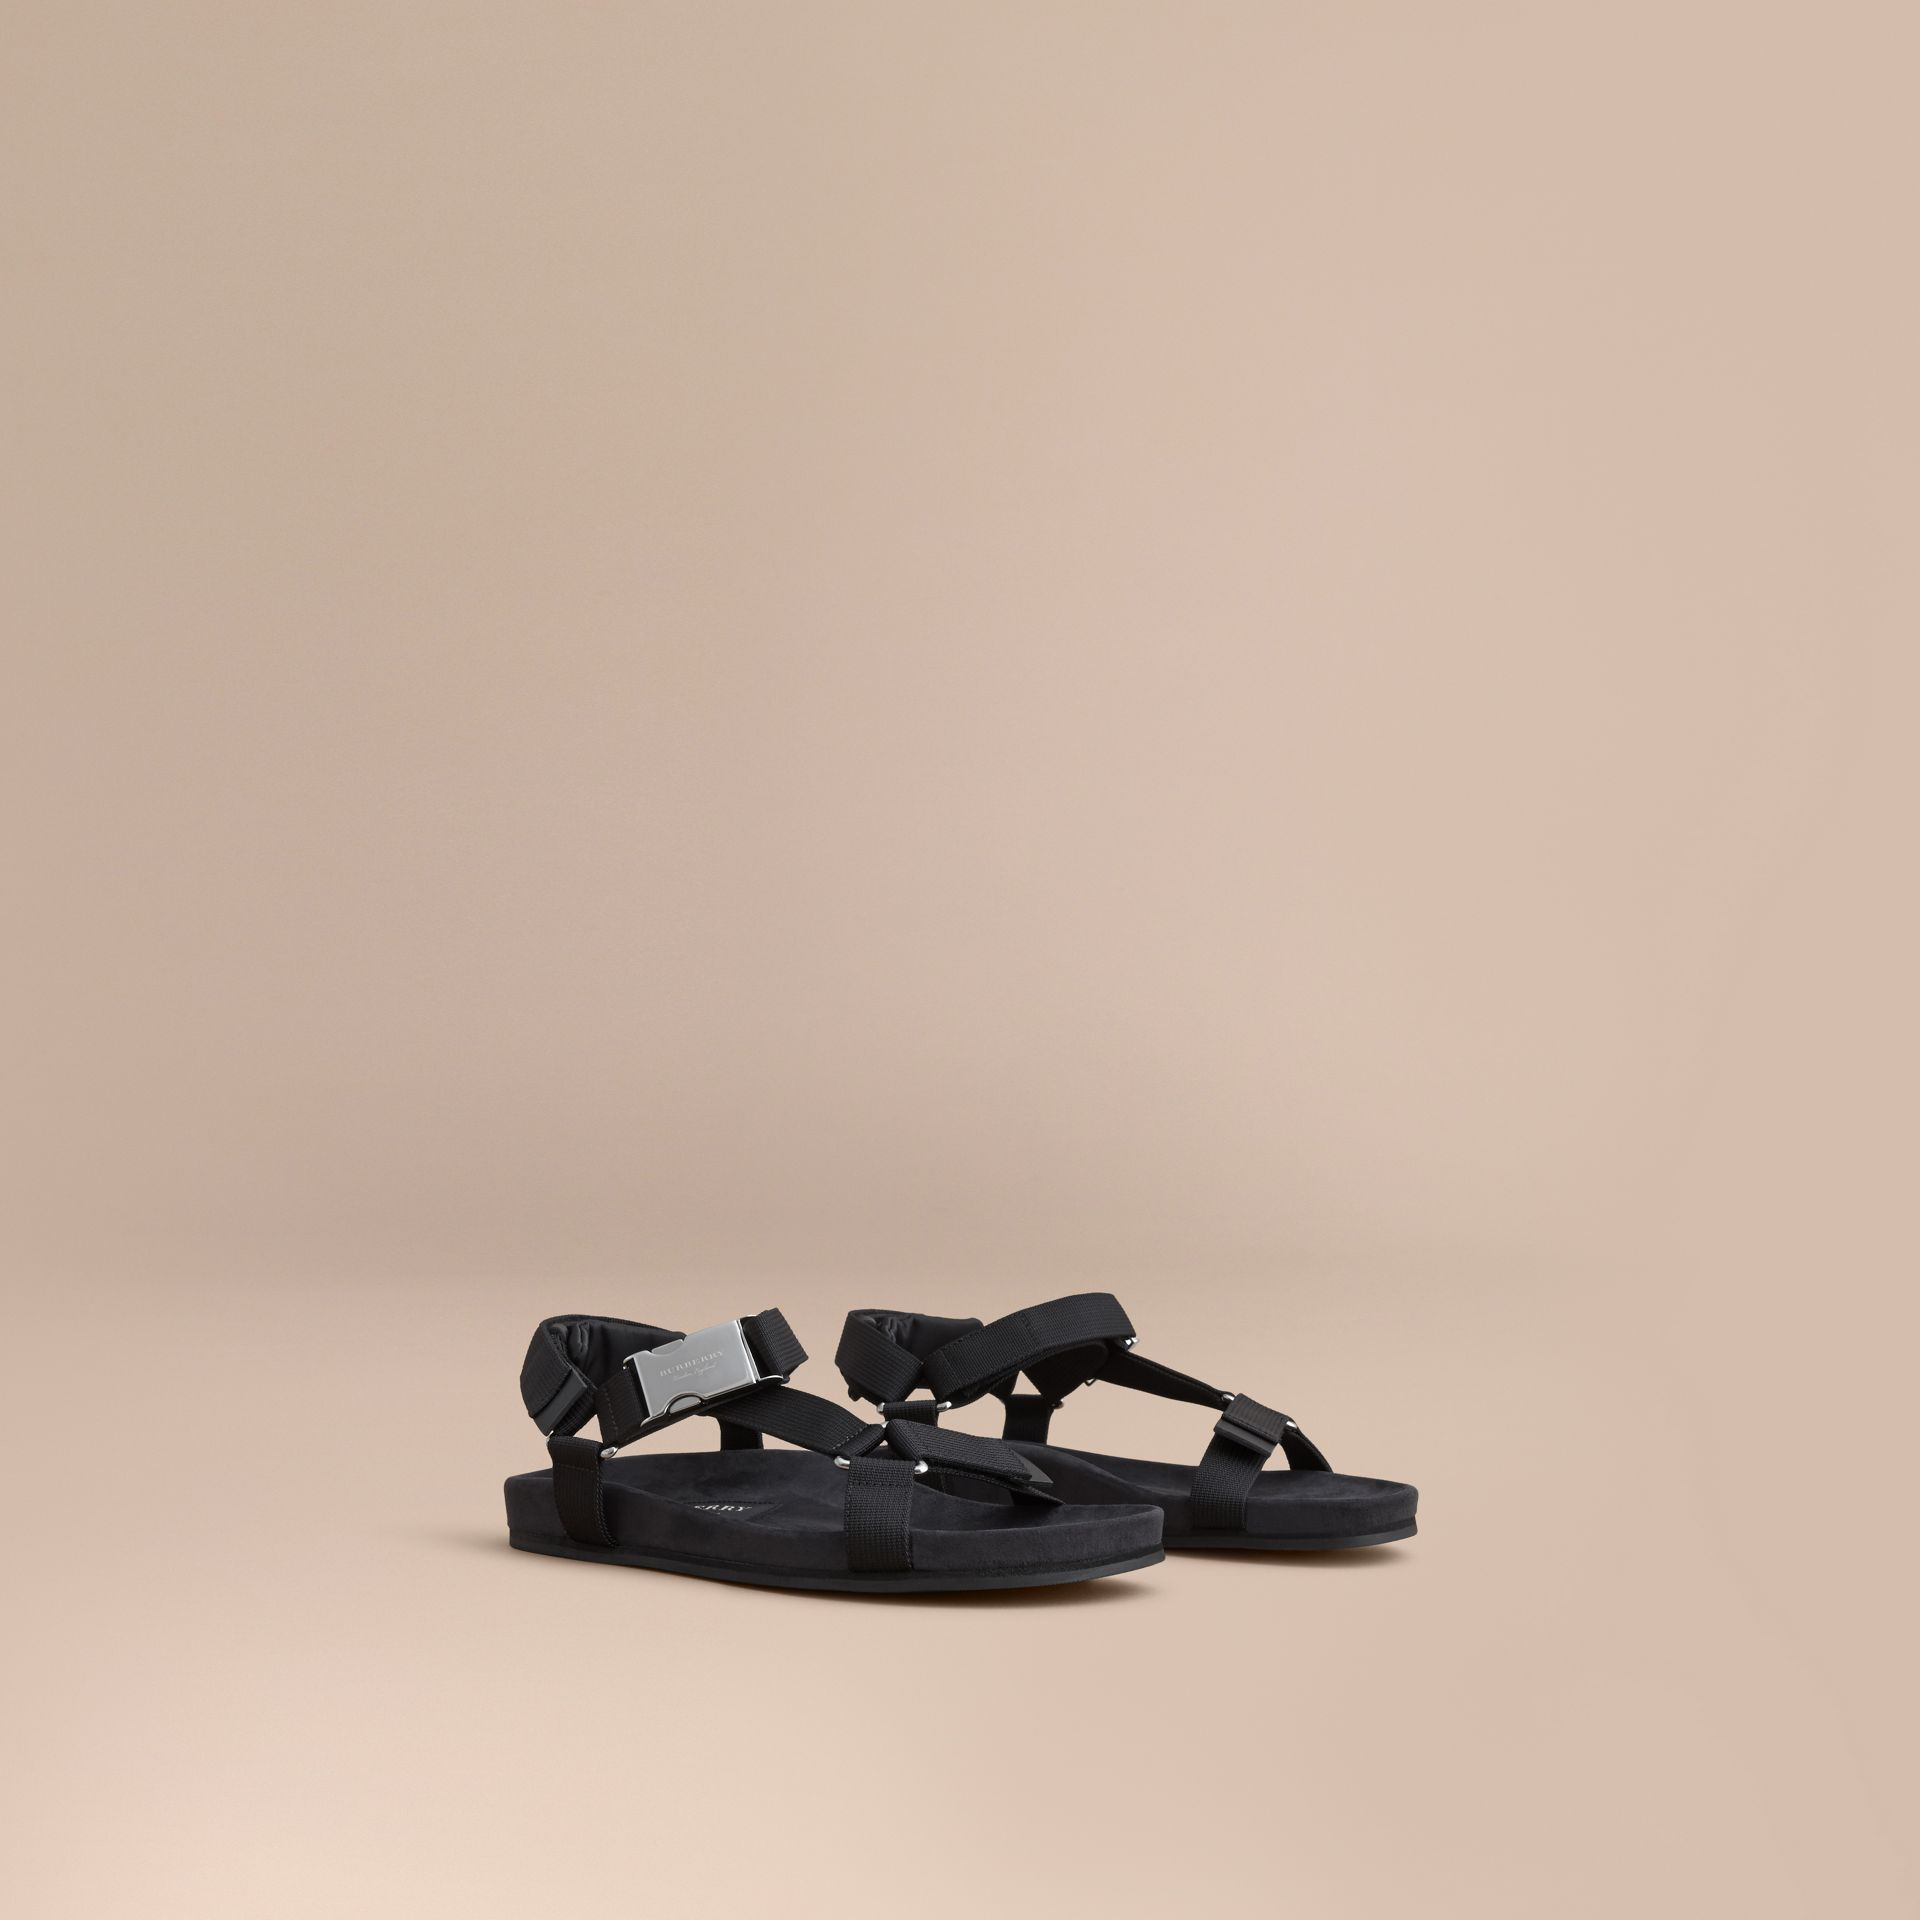 Three-point Strap Ripstop Sandals in Black - Men | Burberry Singapore - gallery image 1